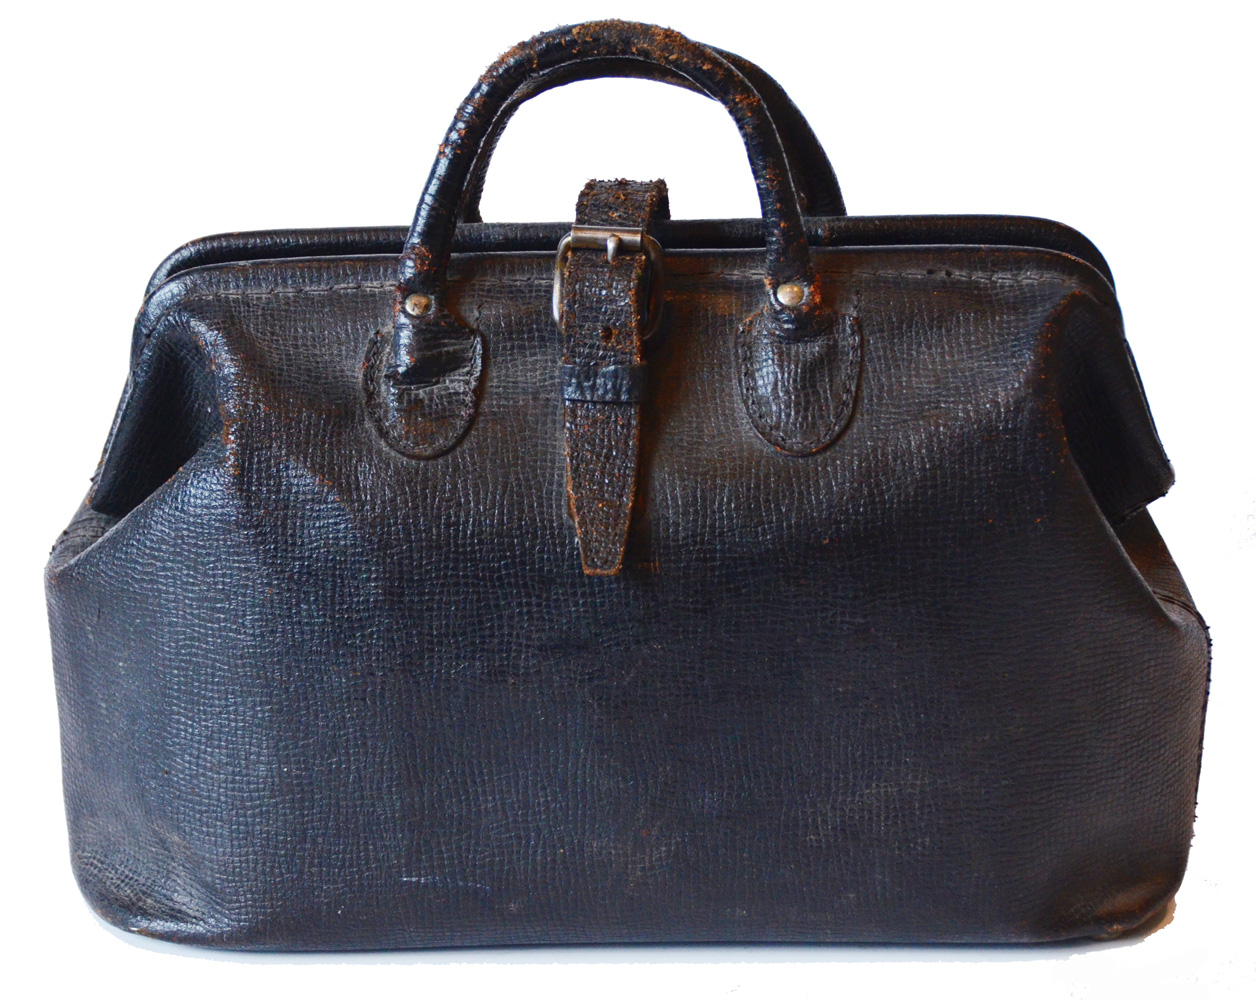 Antique Leather Calkskin Dr Bag Wonderful Small Size-